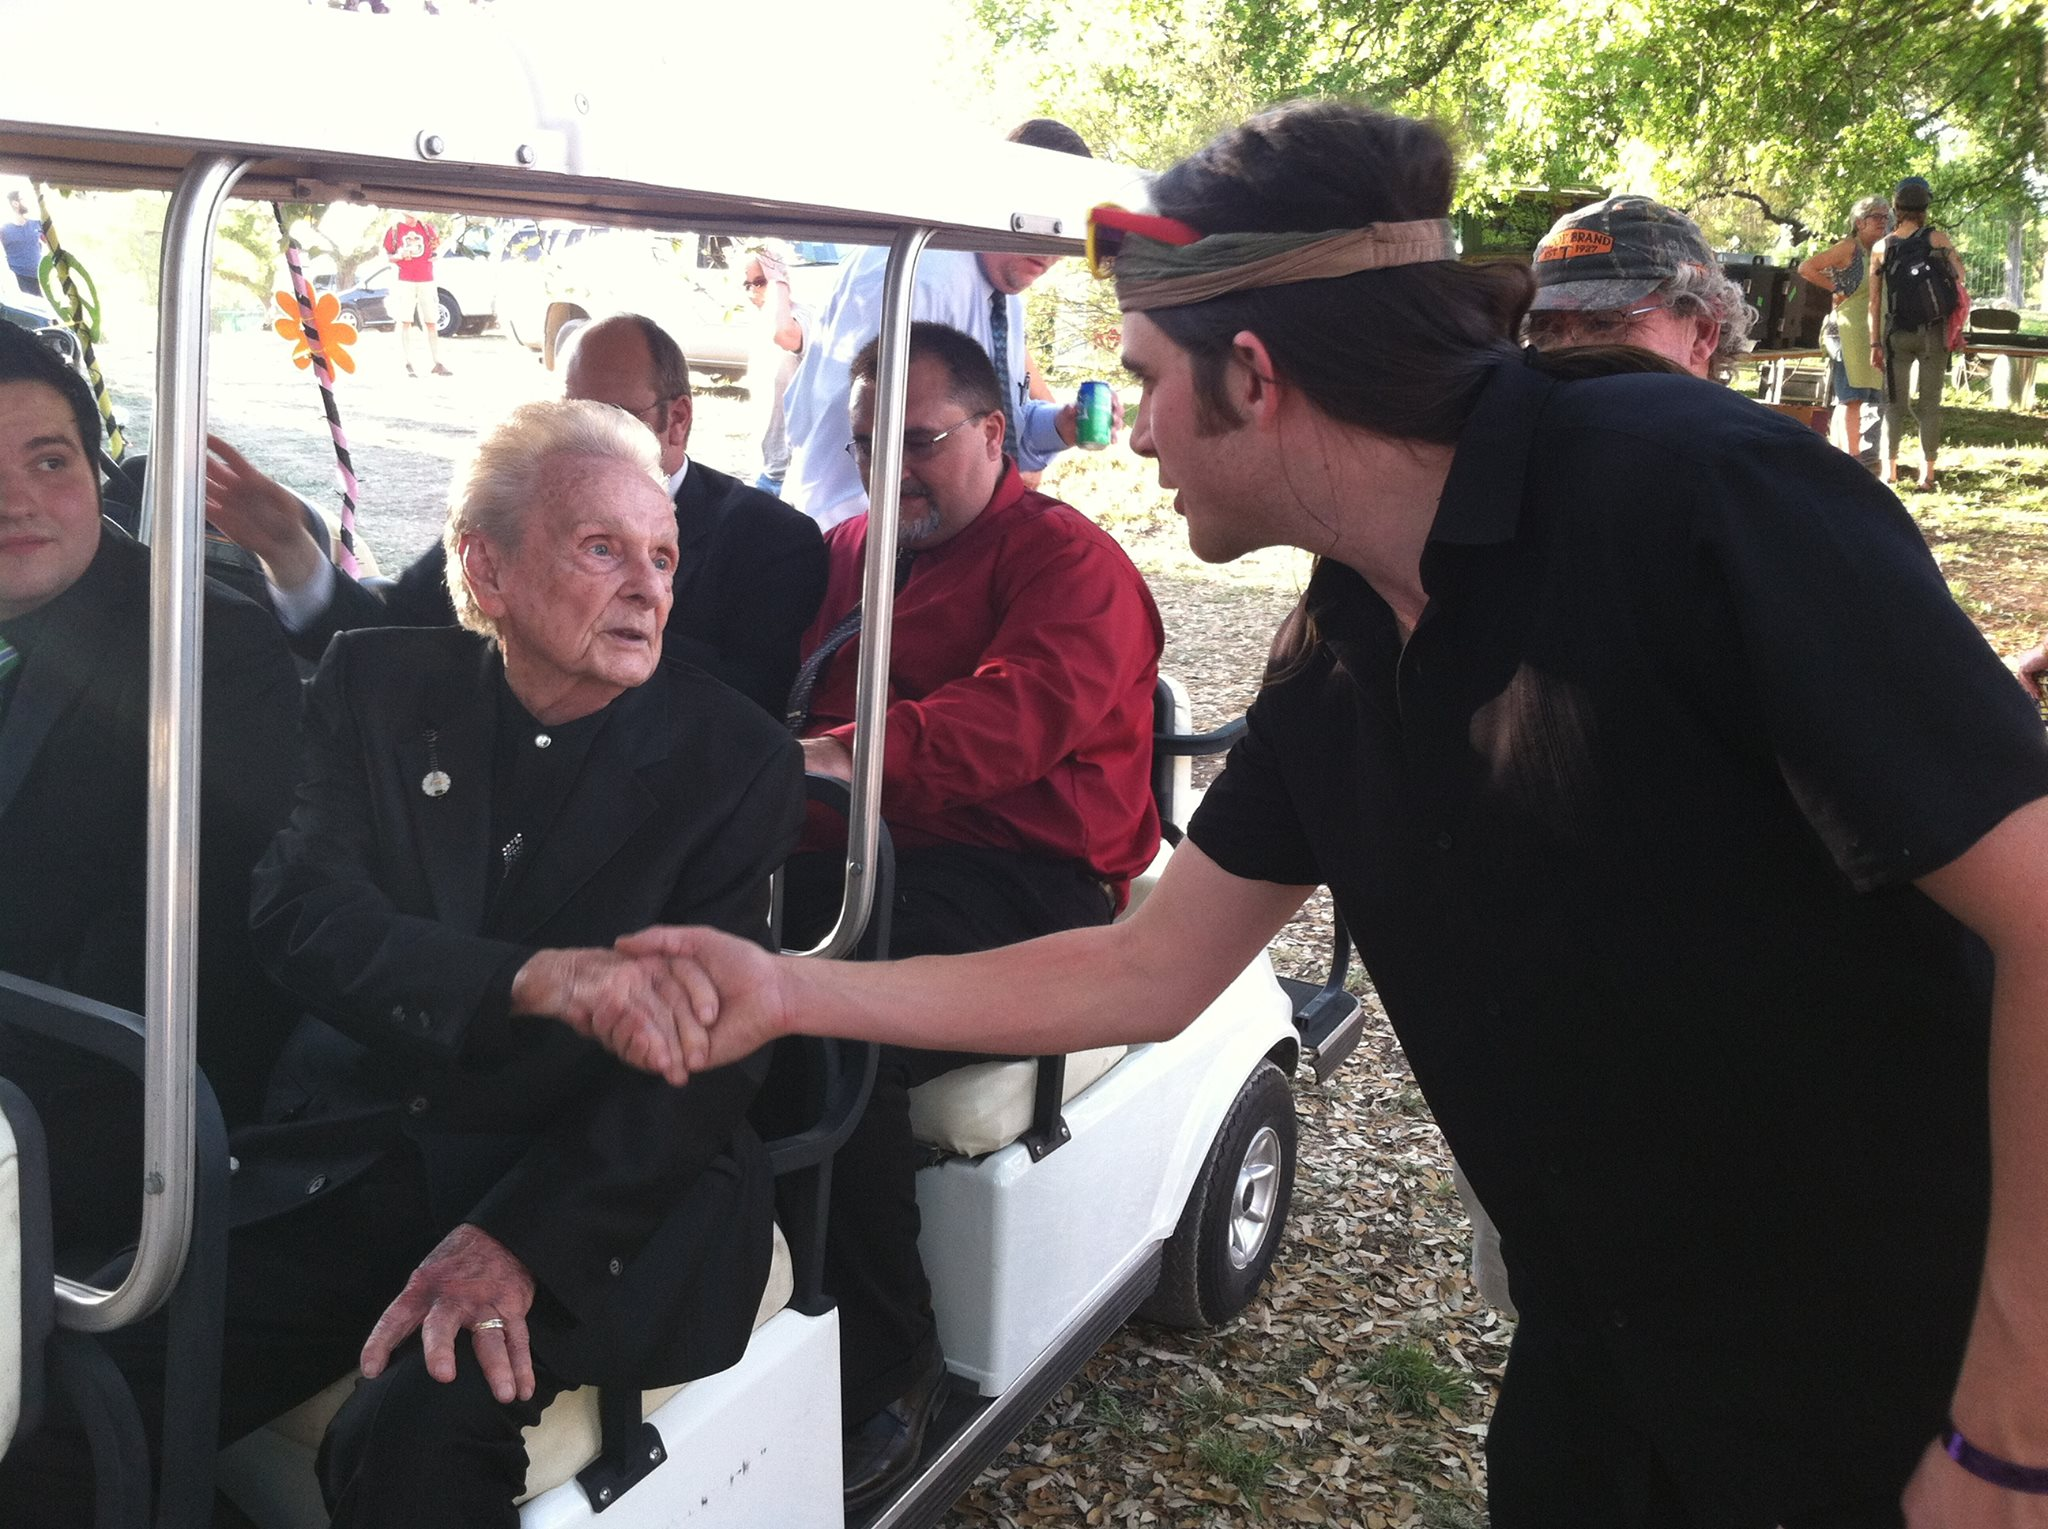 Stash meeting one of his idols, the great Ralph Stanley